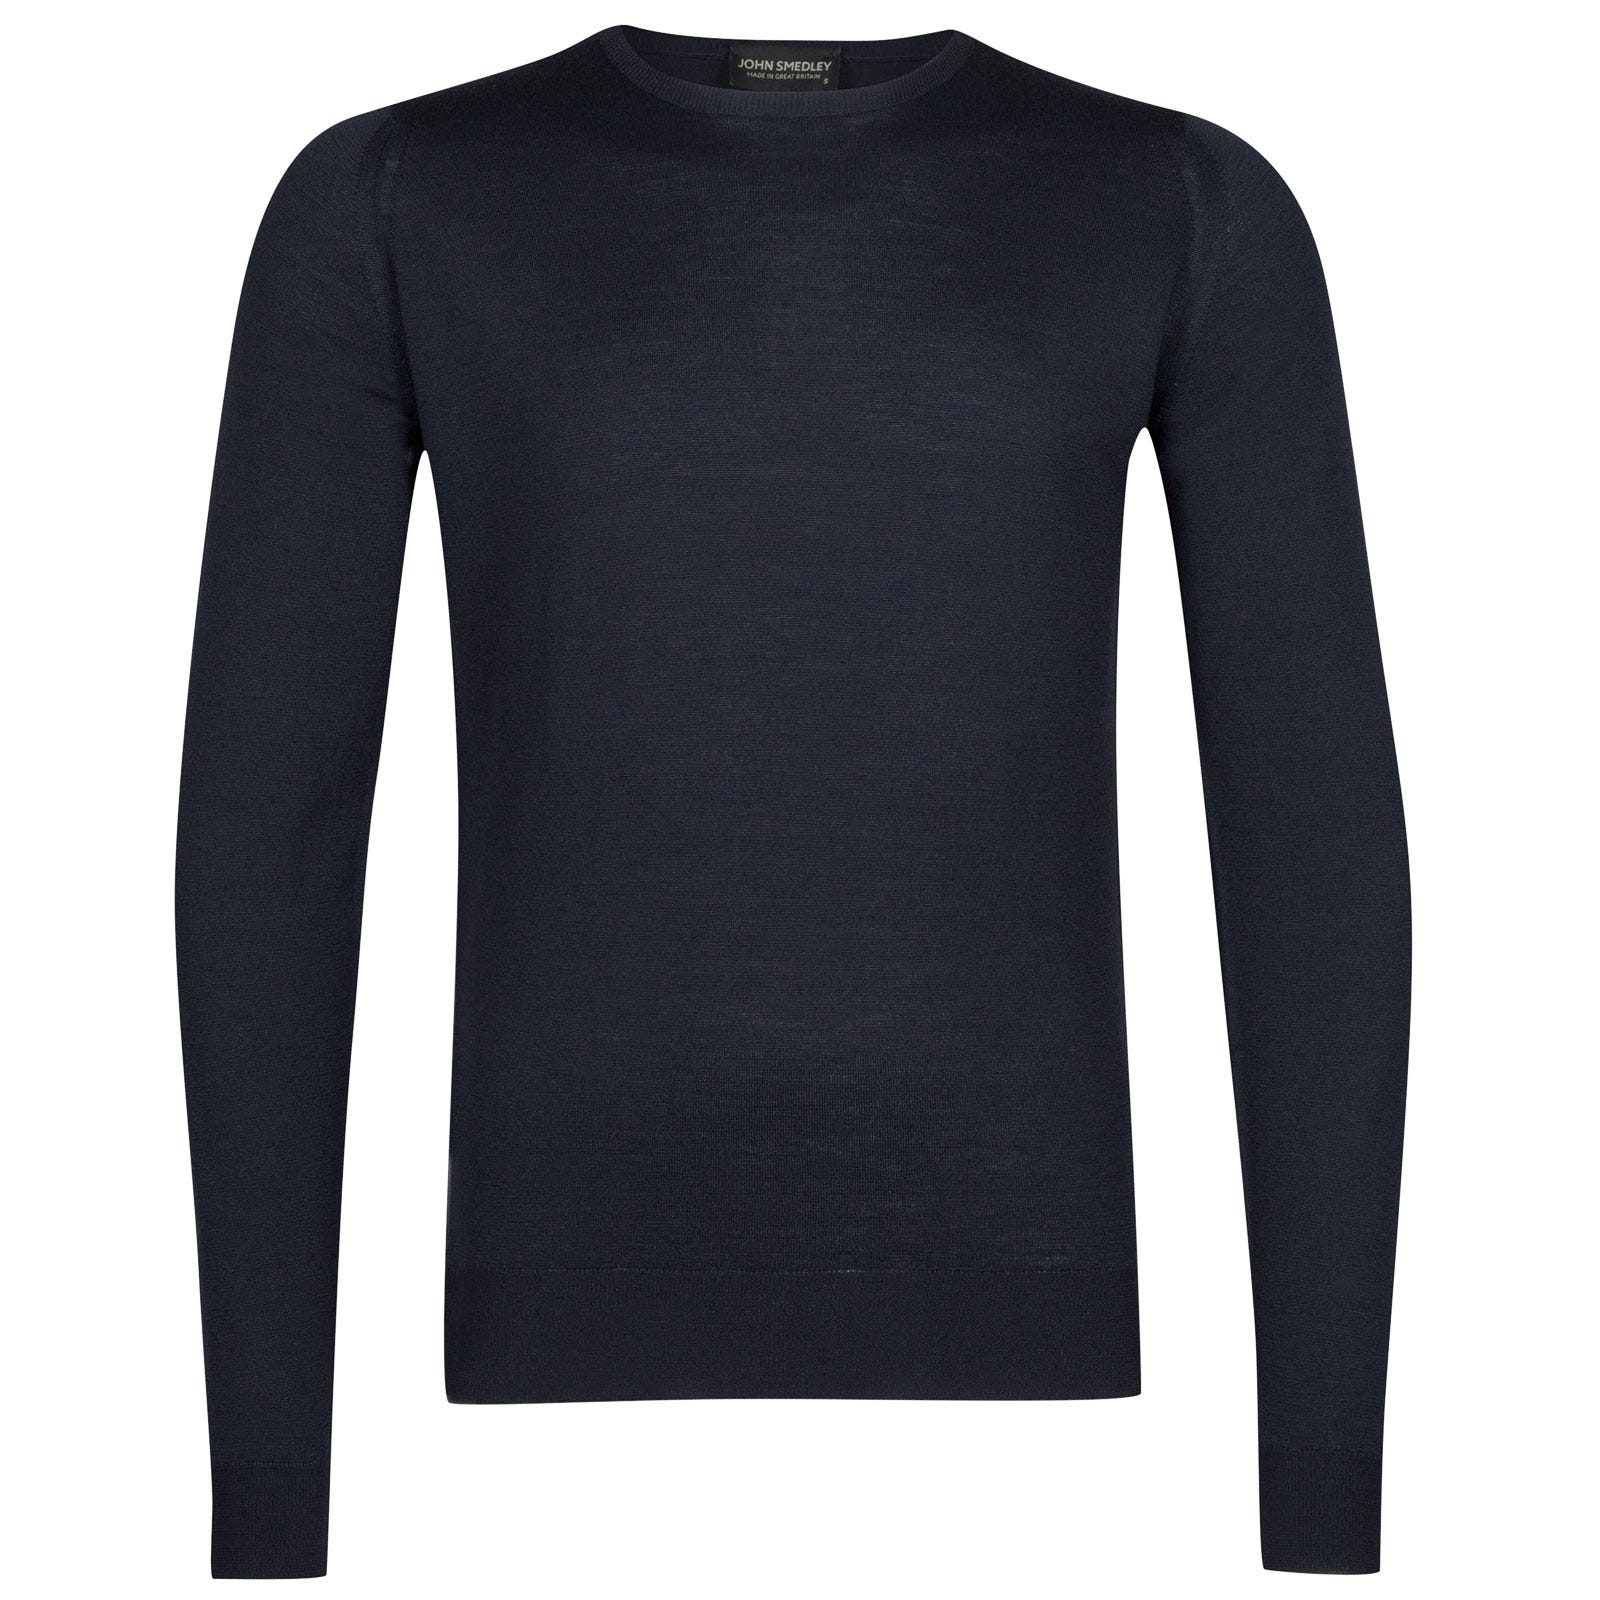 John Smedley lundy Merino Wool Pullover in Midnight-XL